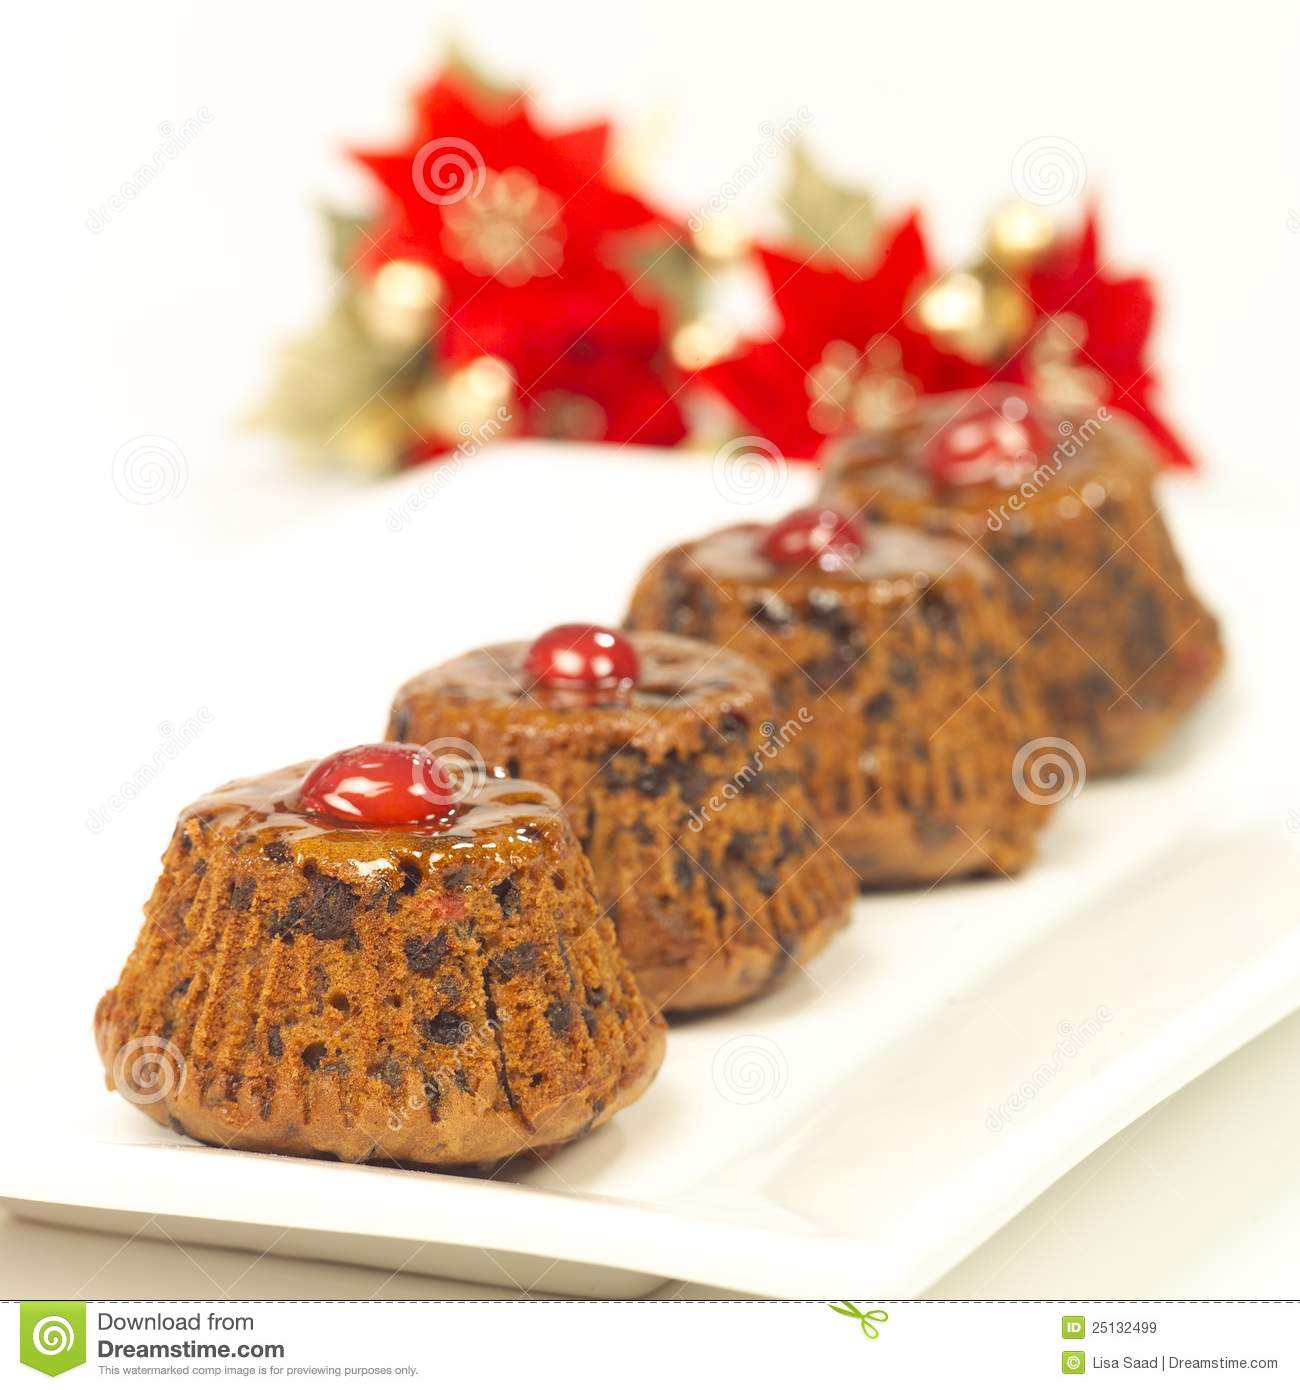 Christmas Tree Muffins: Chocolate Chip Christmas Muffins Royalty Free Stock Images